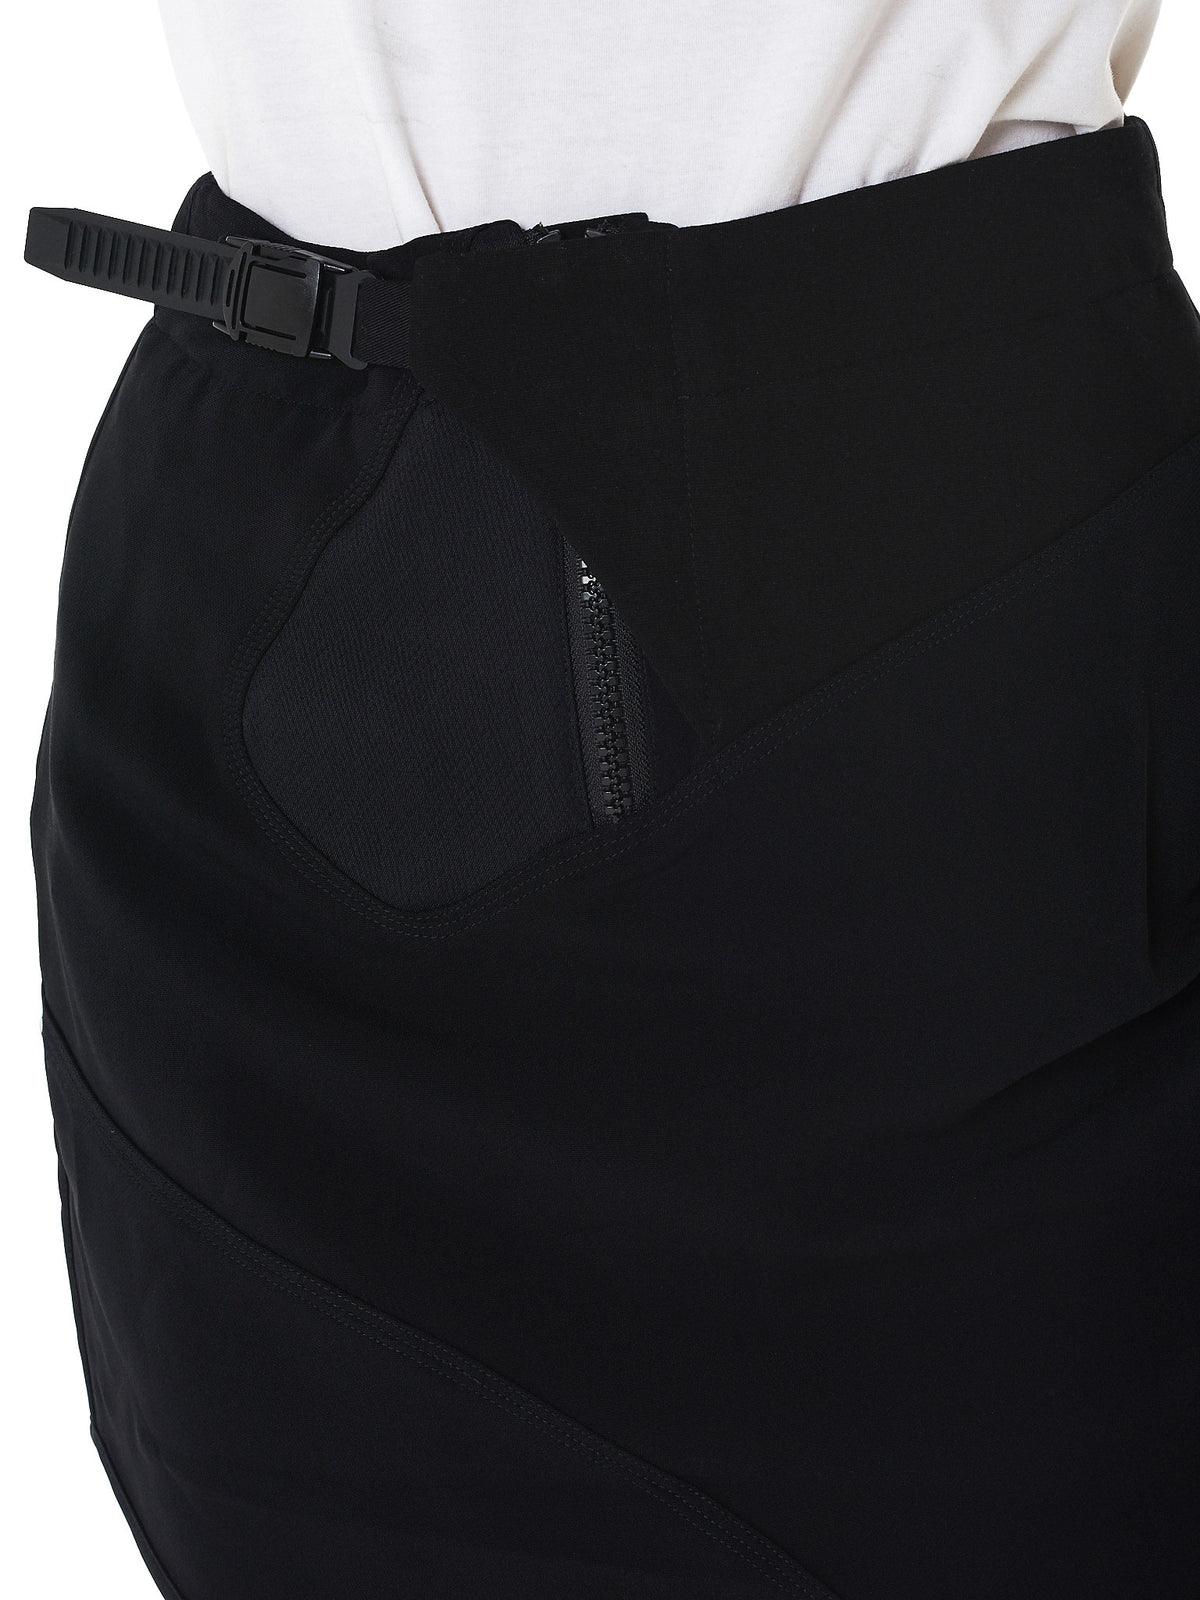 Tim Coppens- HLorenzo- skirt